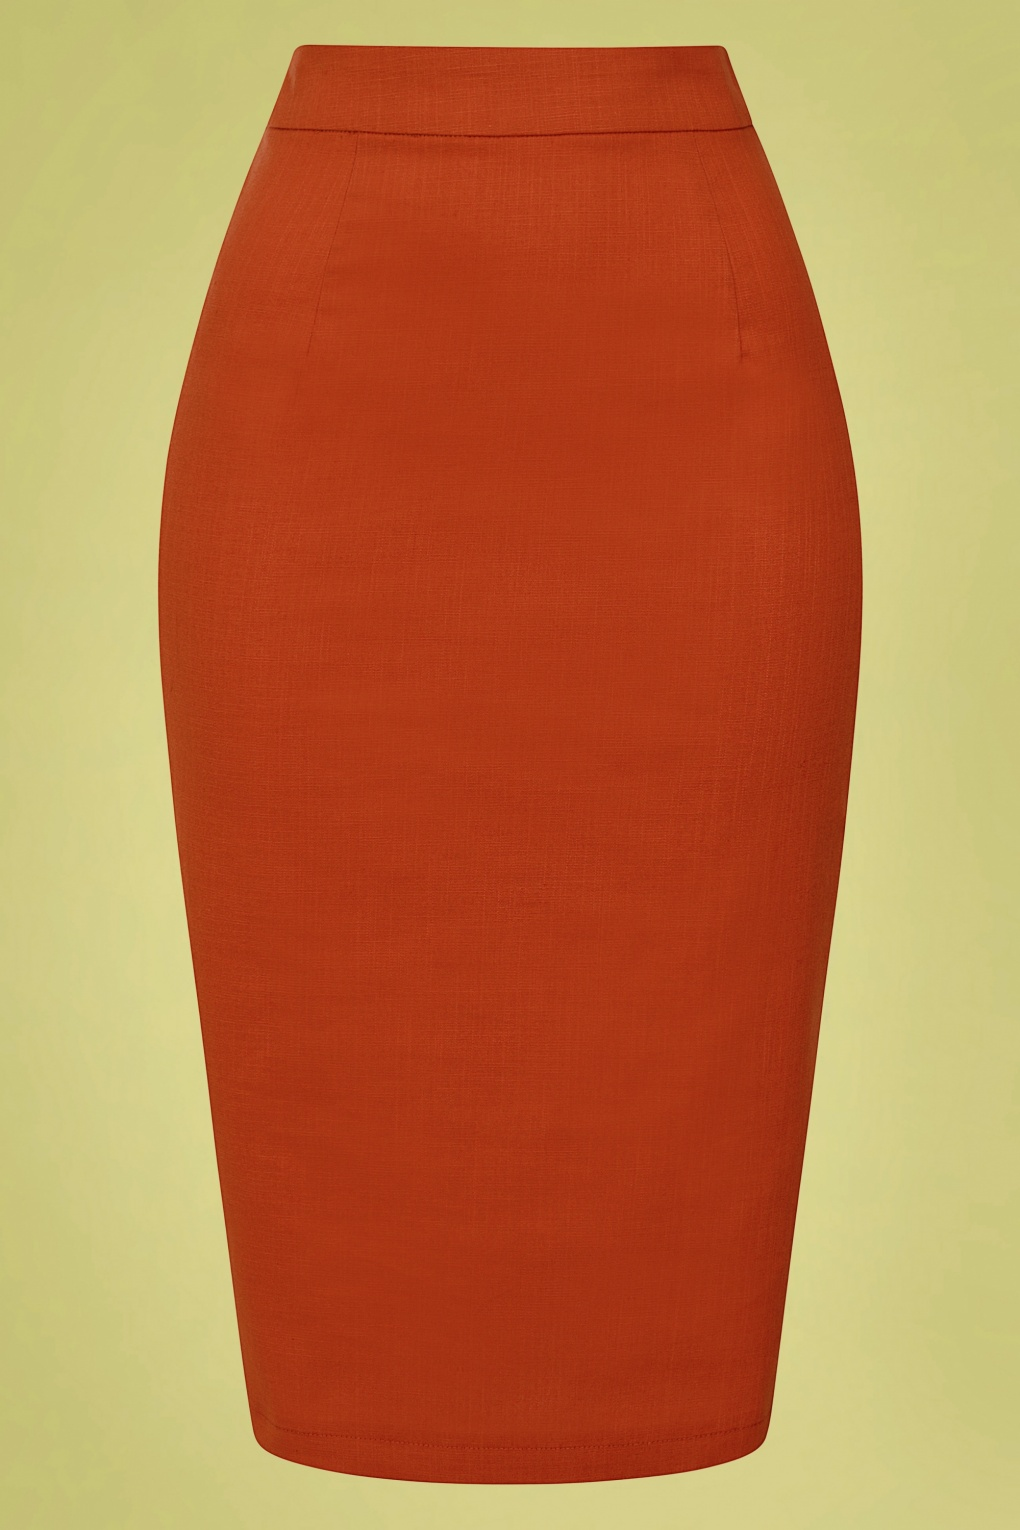 Retro Lingerie, Vintage Lingerie, 1940s-1970s 50s Polly Textured Cotton Pencil Skirt in Orange £31.14 AT vintagedancer.com